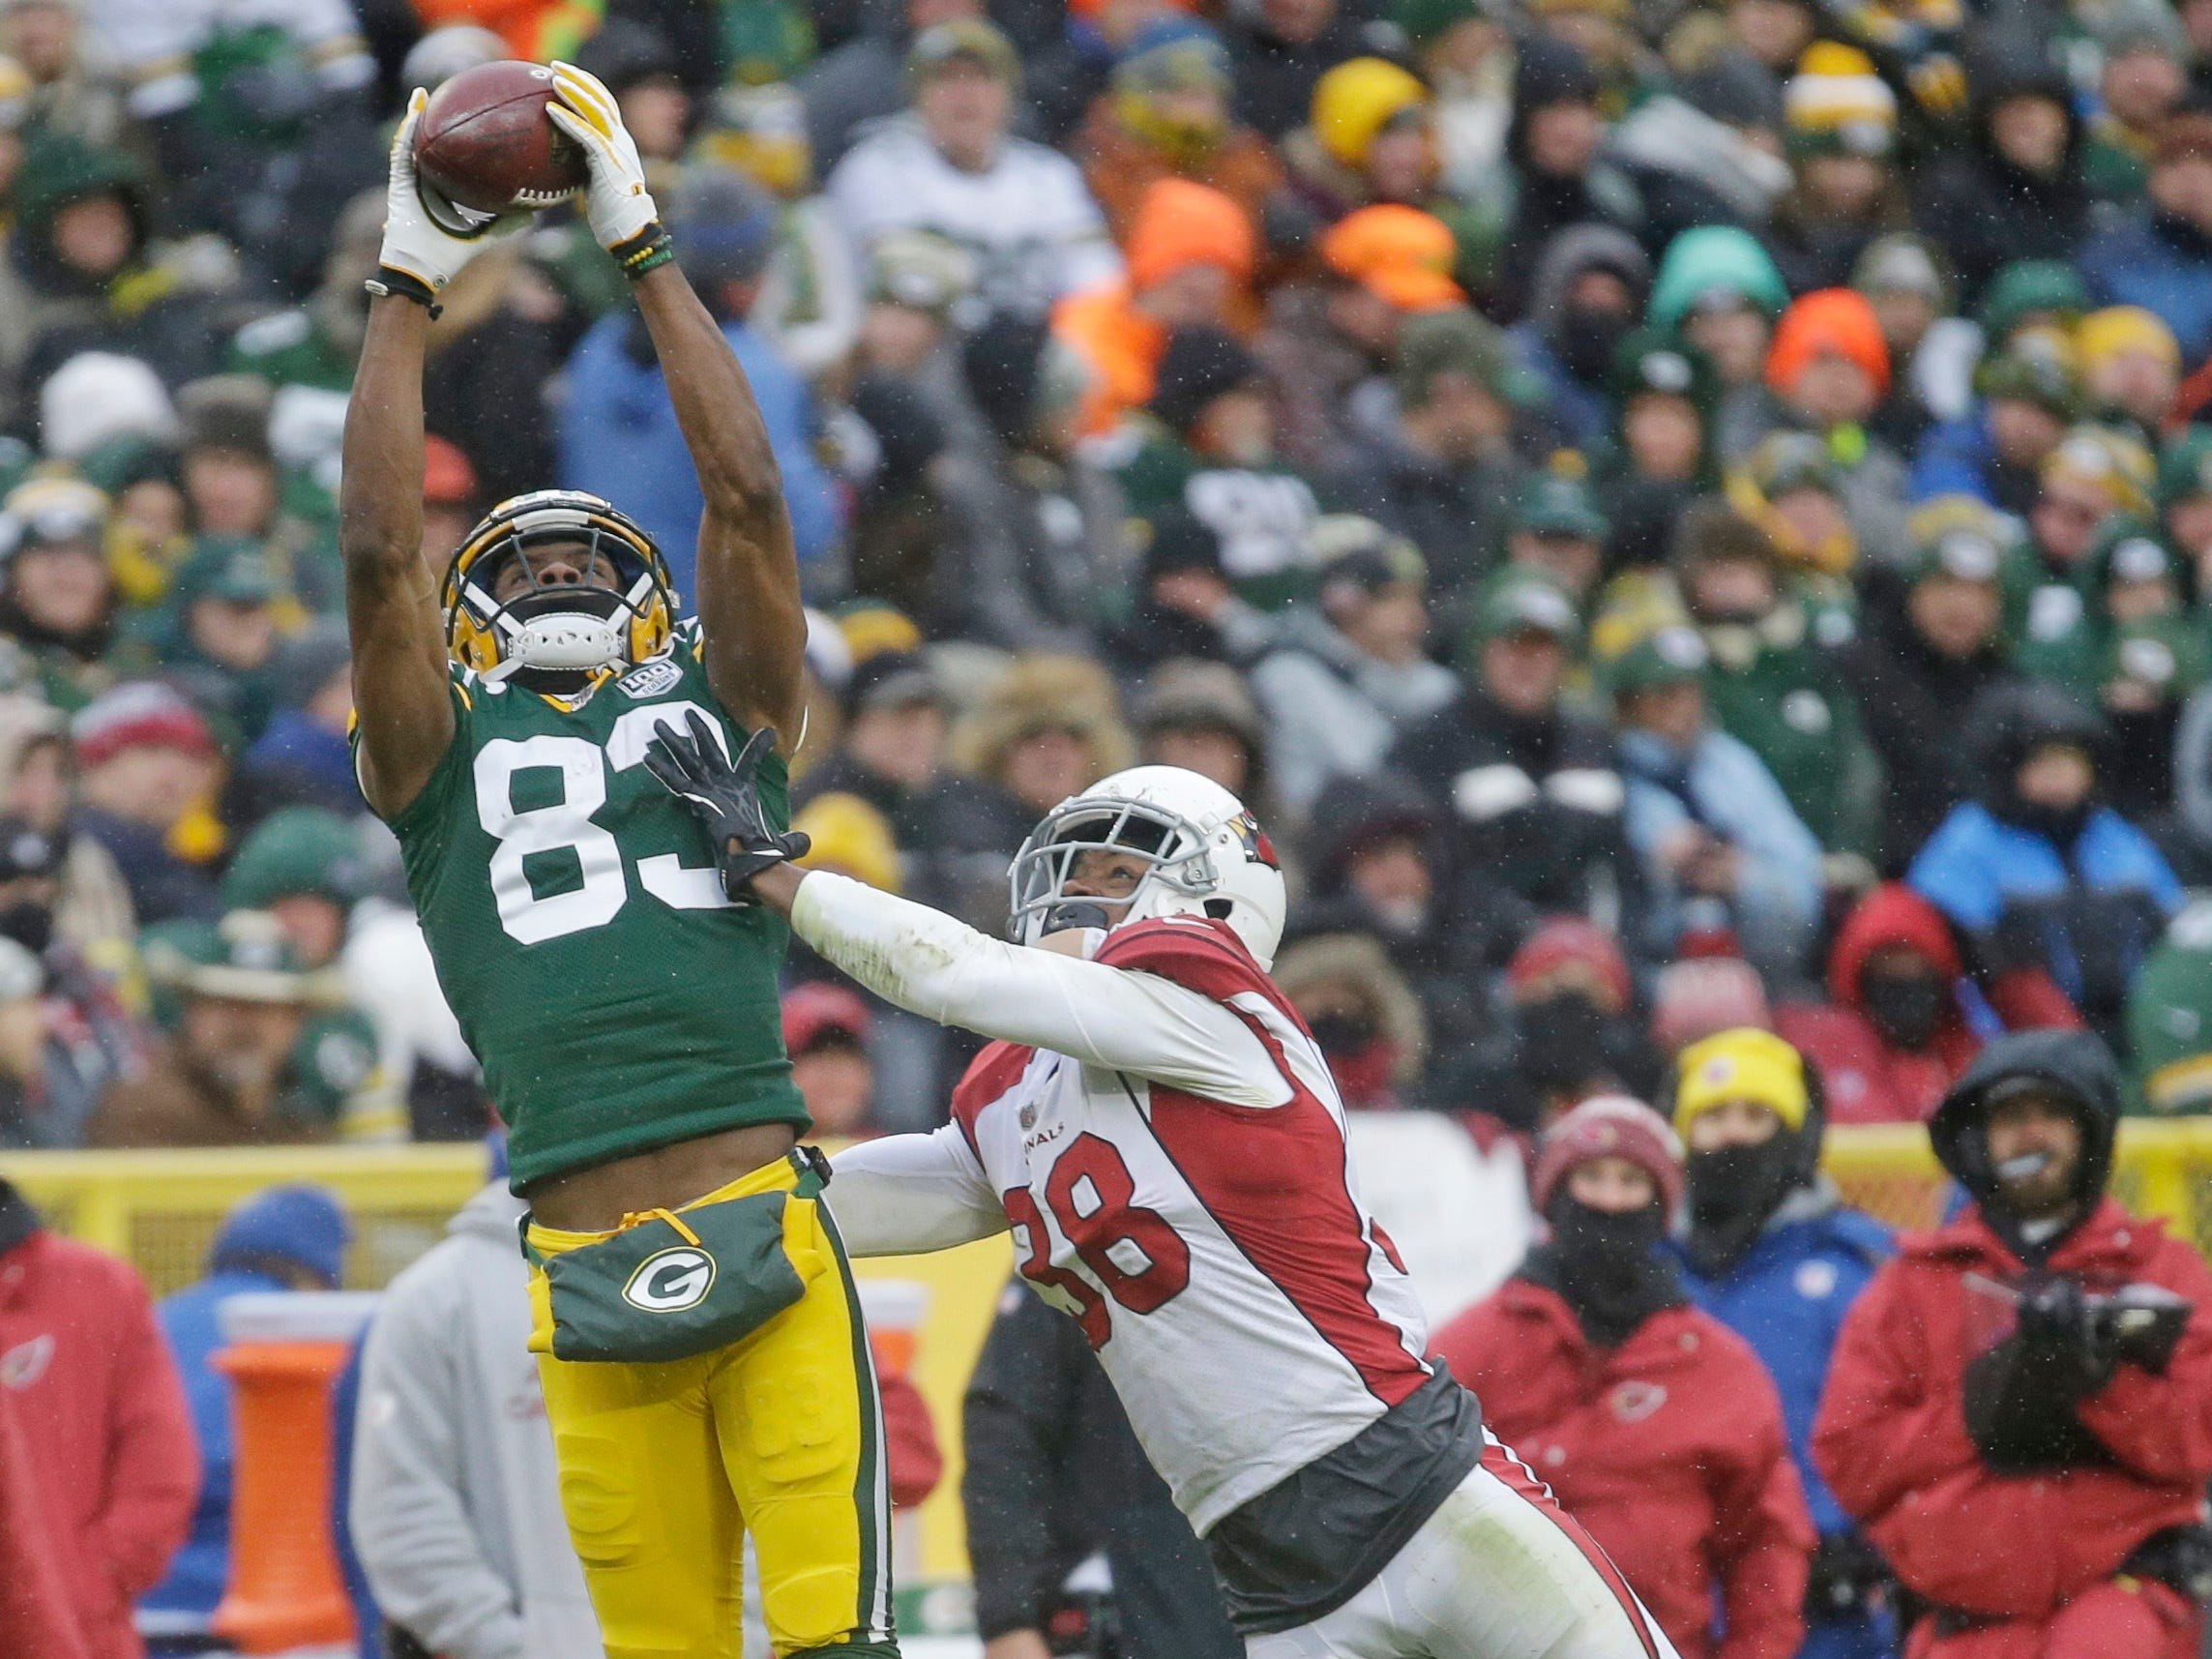 Green Bay Packers wide receiver Marquez Valdes-Scantling jumps to make a catch while being covered by Arizona Cardinals defensive back David Amerson during the second half of an NFL football game Sunday, Dec. 2, 2018, in Green Bay, Wis. (AP Photo/Mike Roemer)